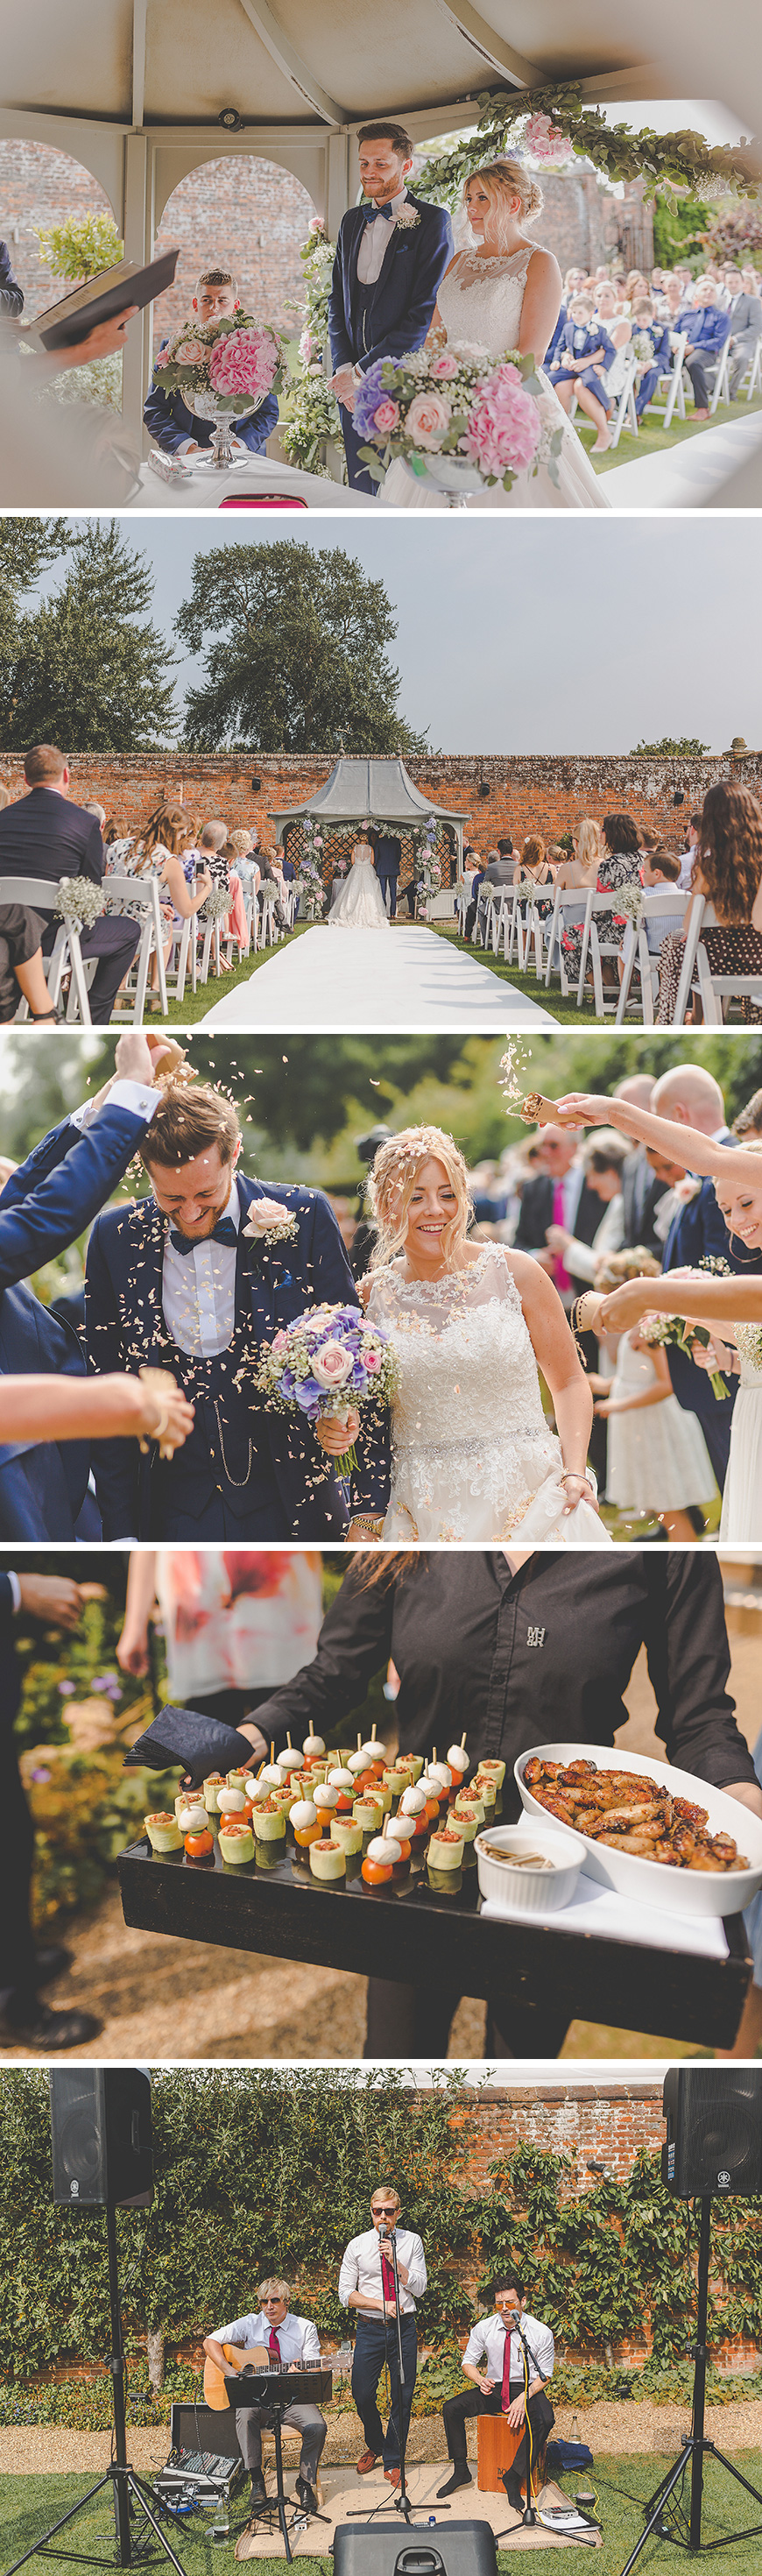 Amber and Alex's Fun-Filled Summer Wedding at Braxted Park  | CHWV